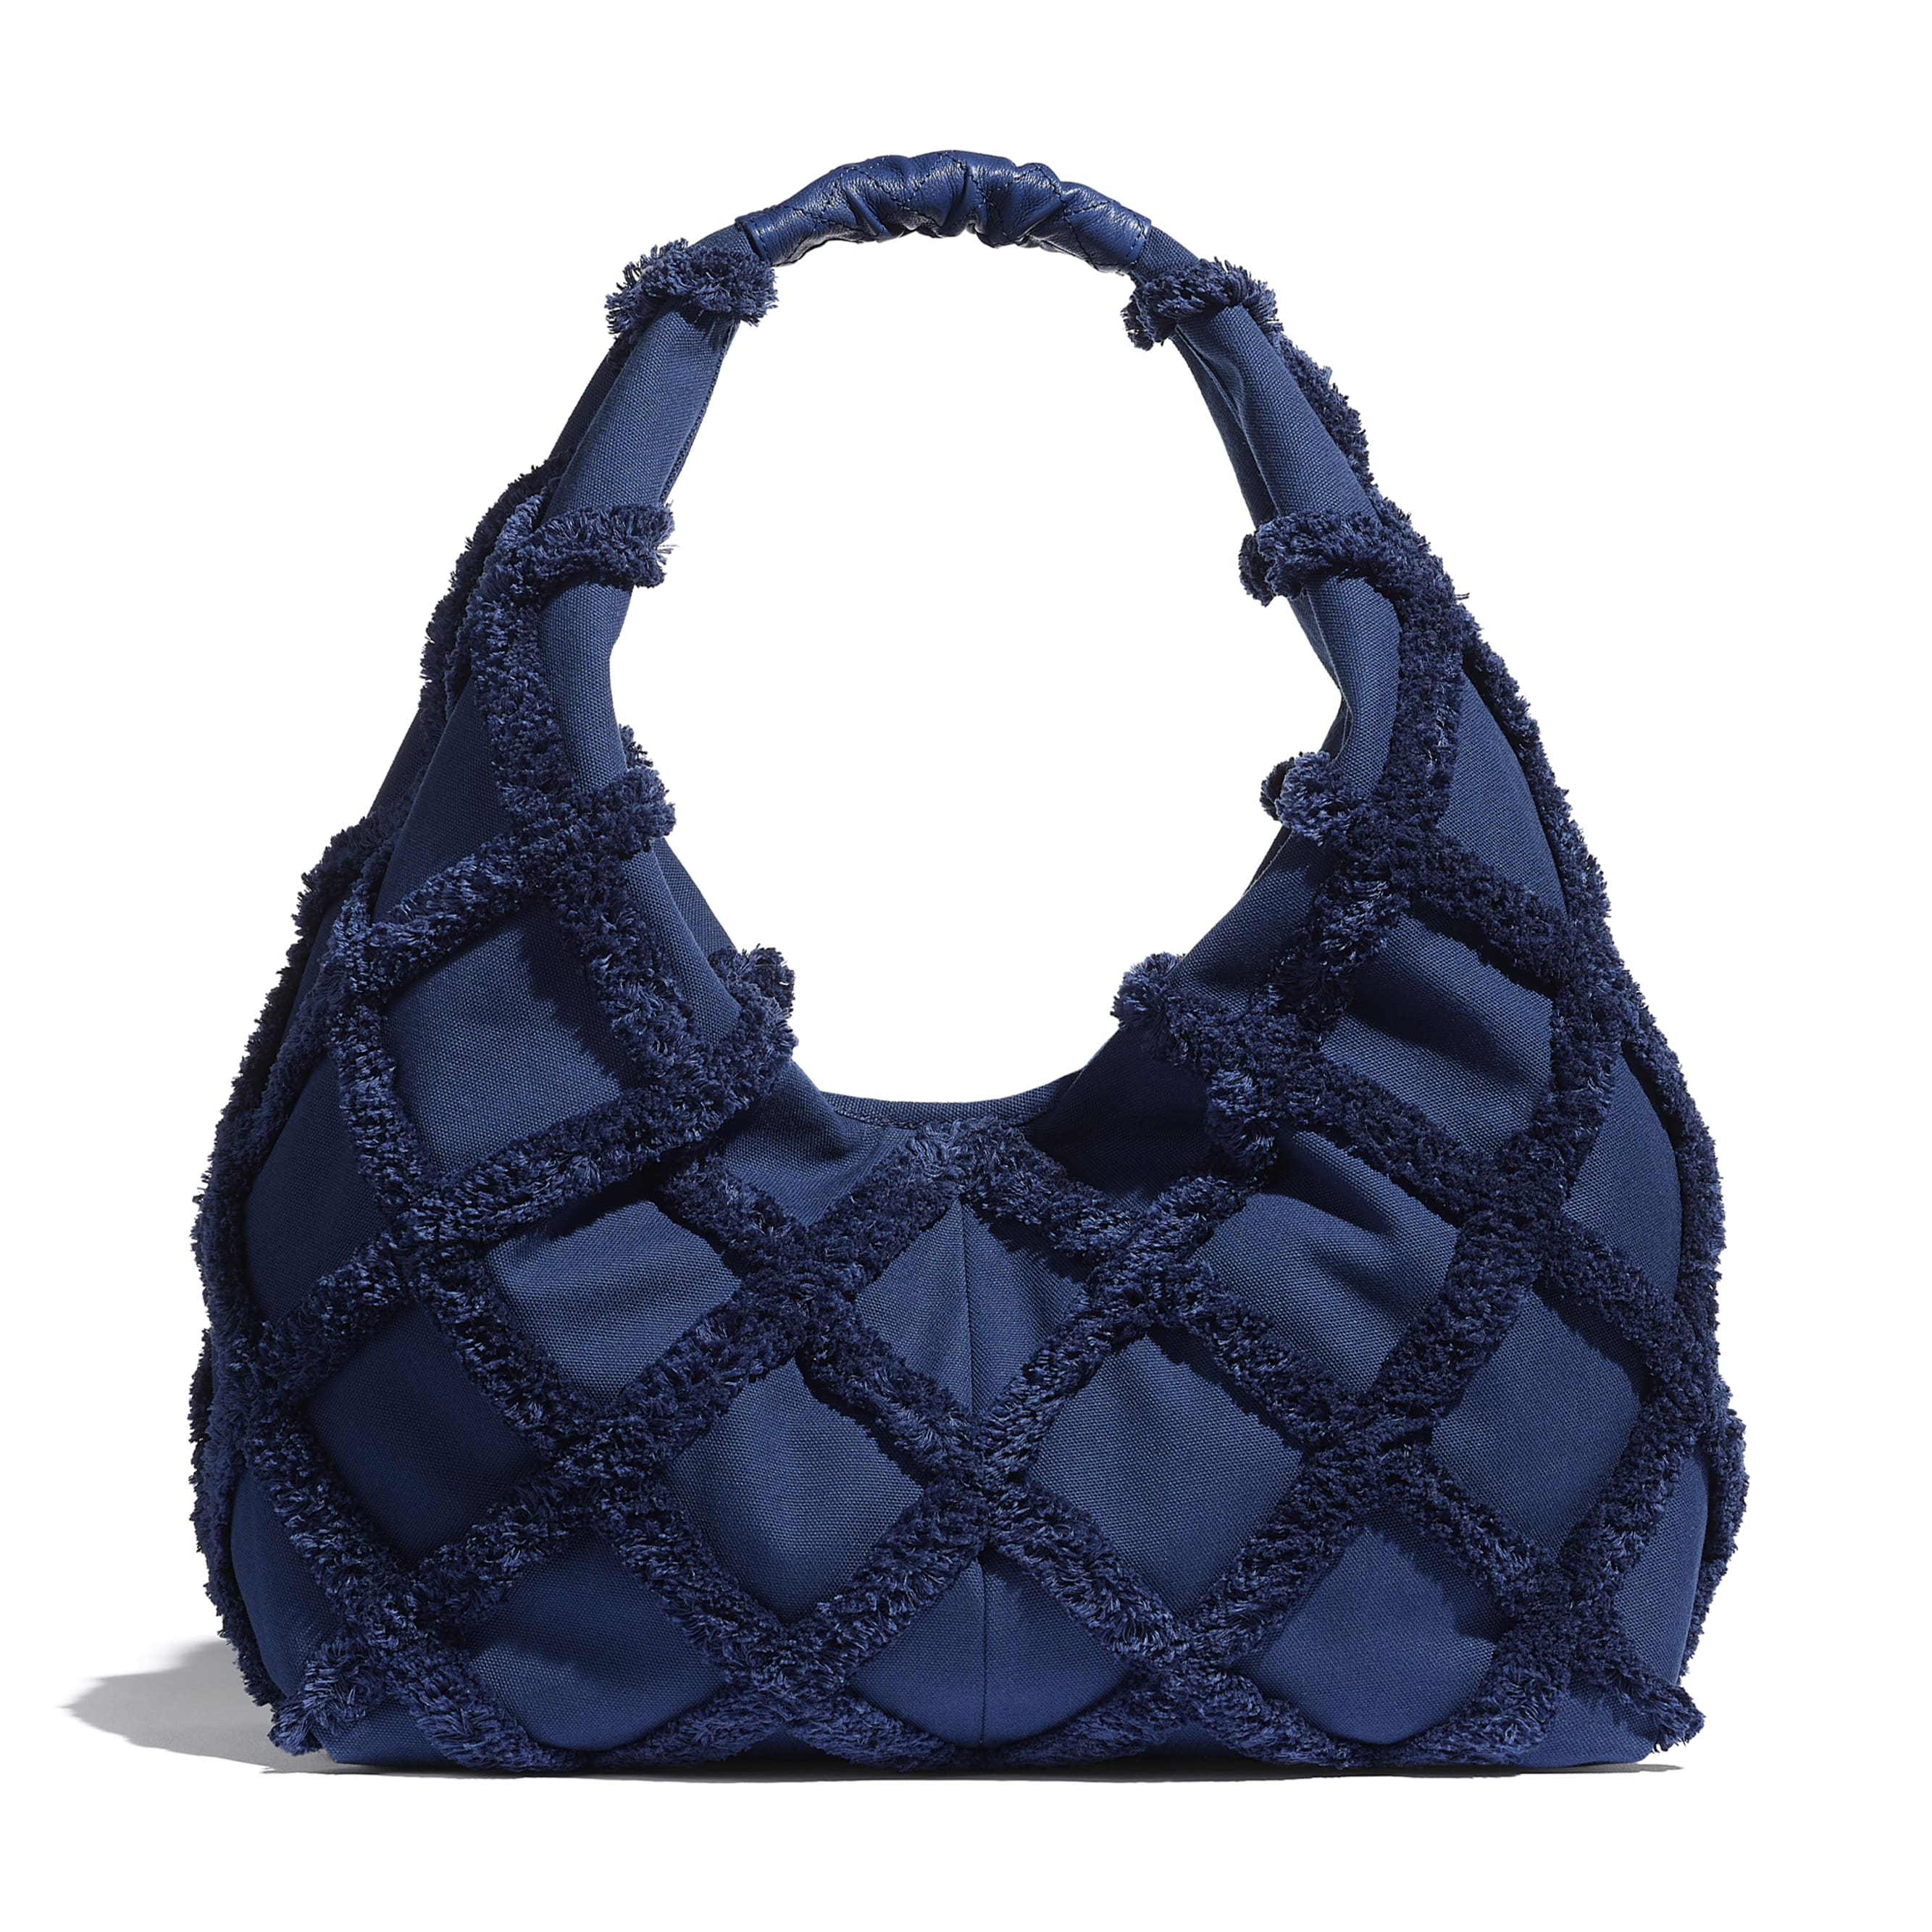 Large Hobo Bag - Navy Blue - Cotton Canvas, Calfskin & Gold-Tone Metal - CHANEL - Alternative view - see standard sized version